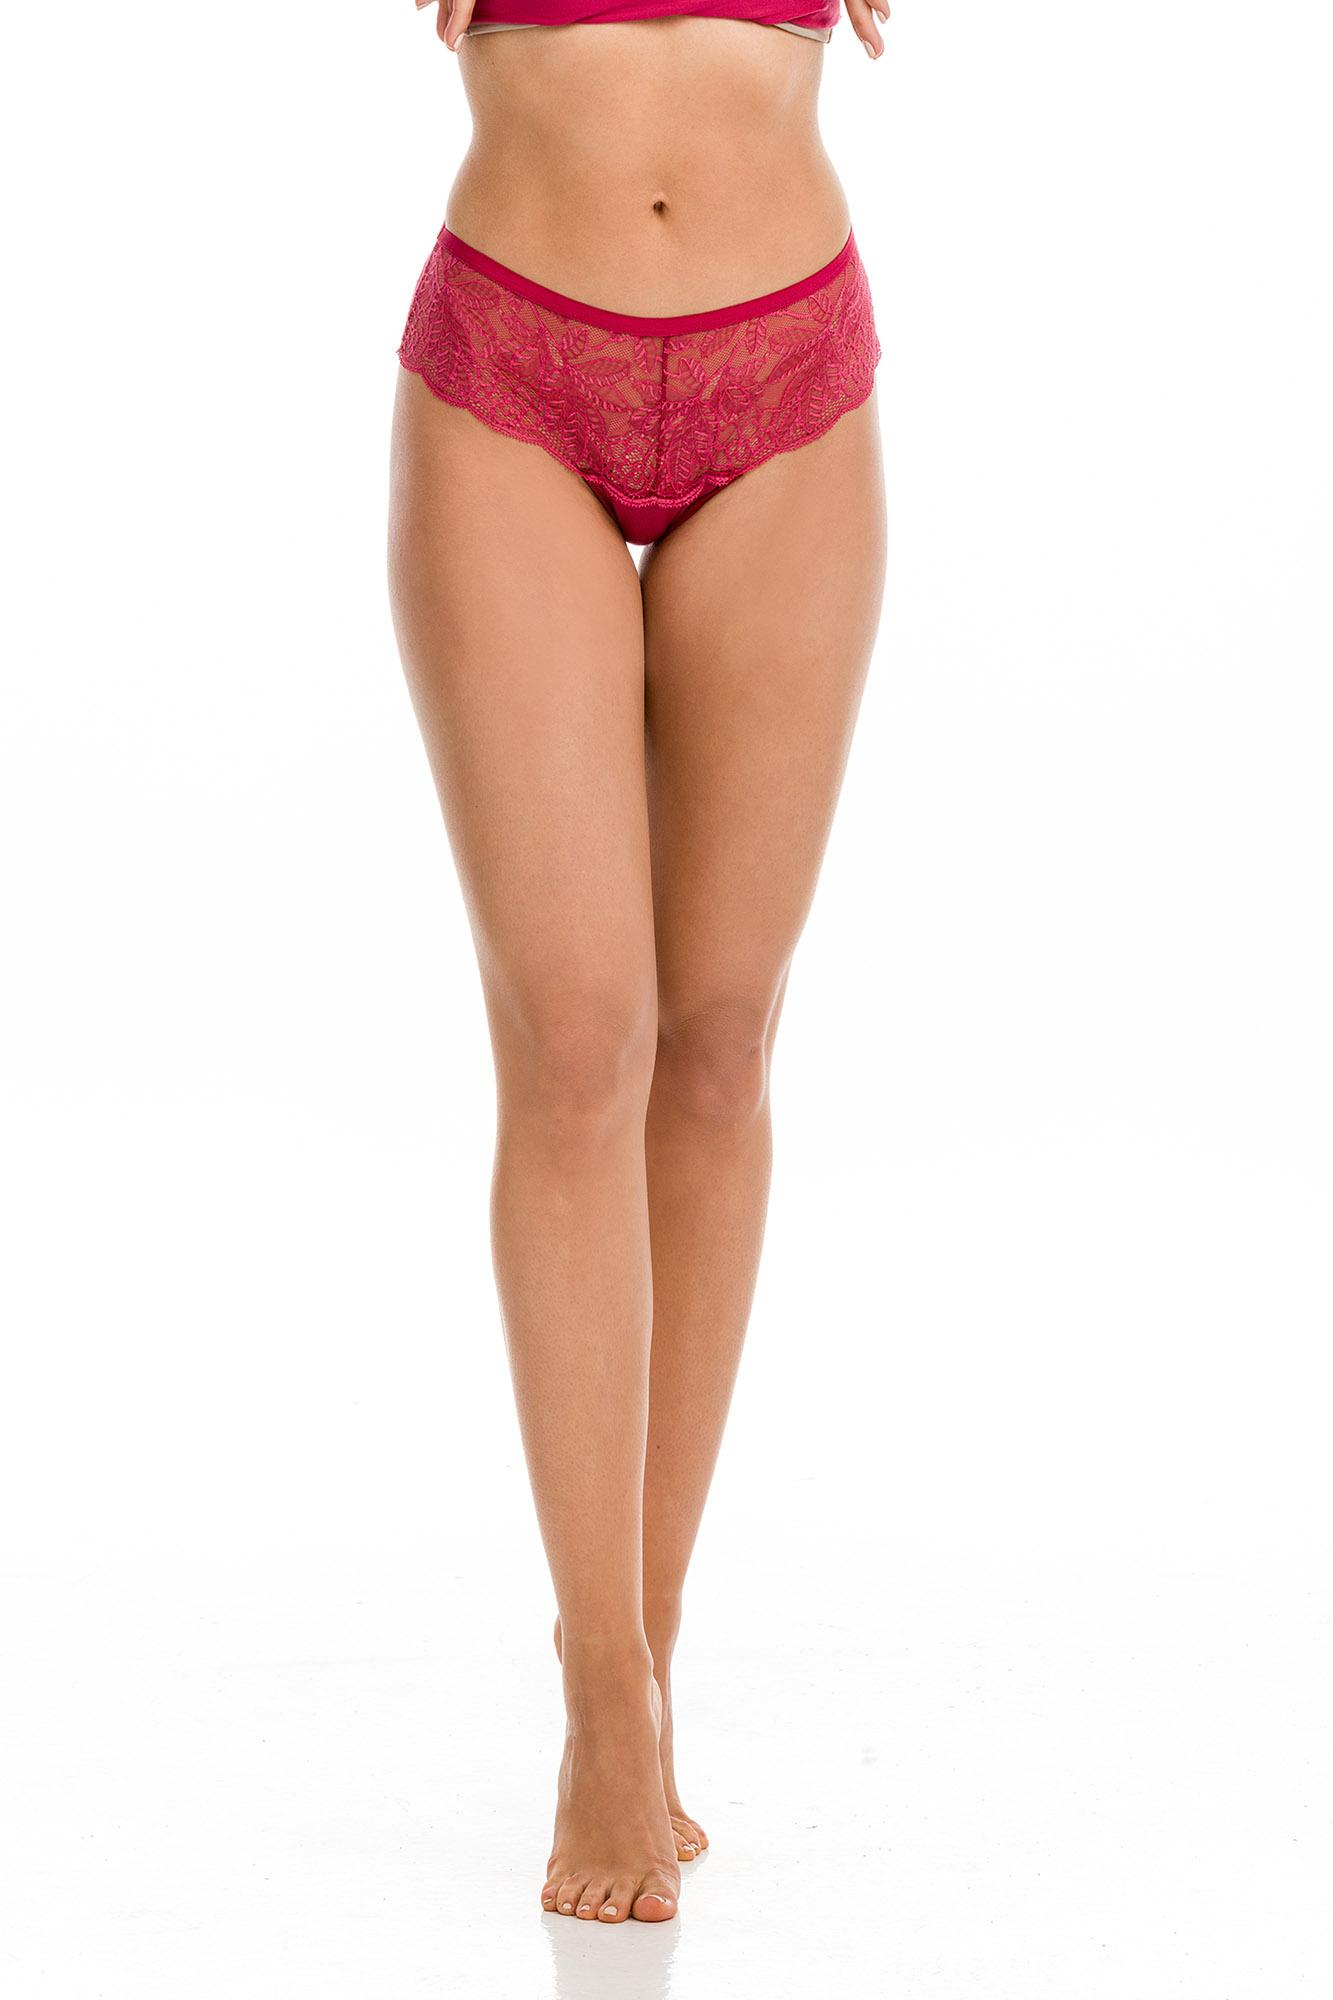 Women's Lace Cheeky Slip